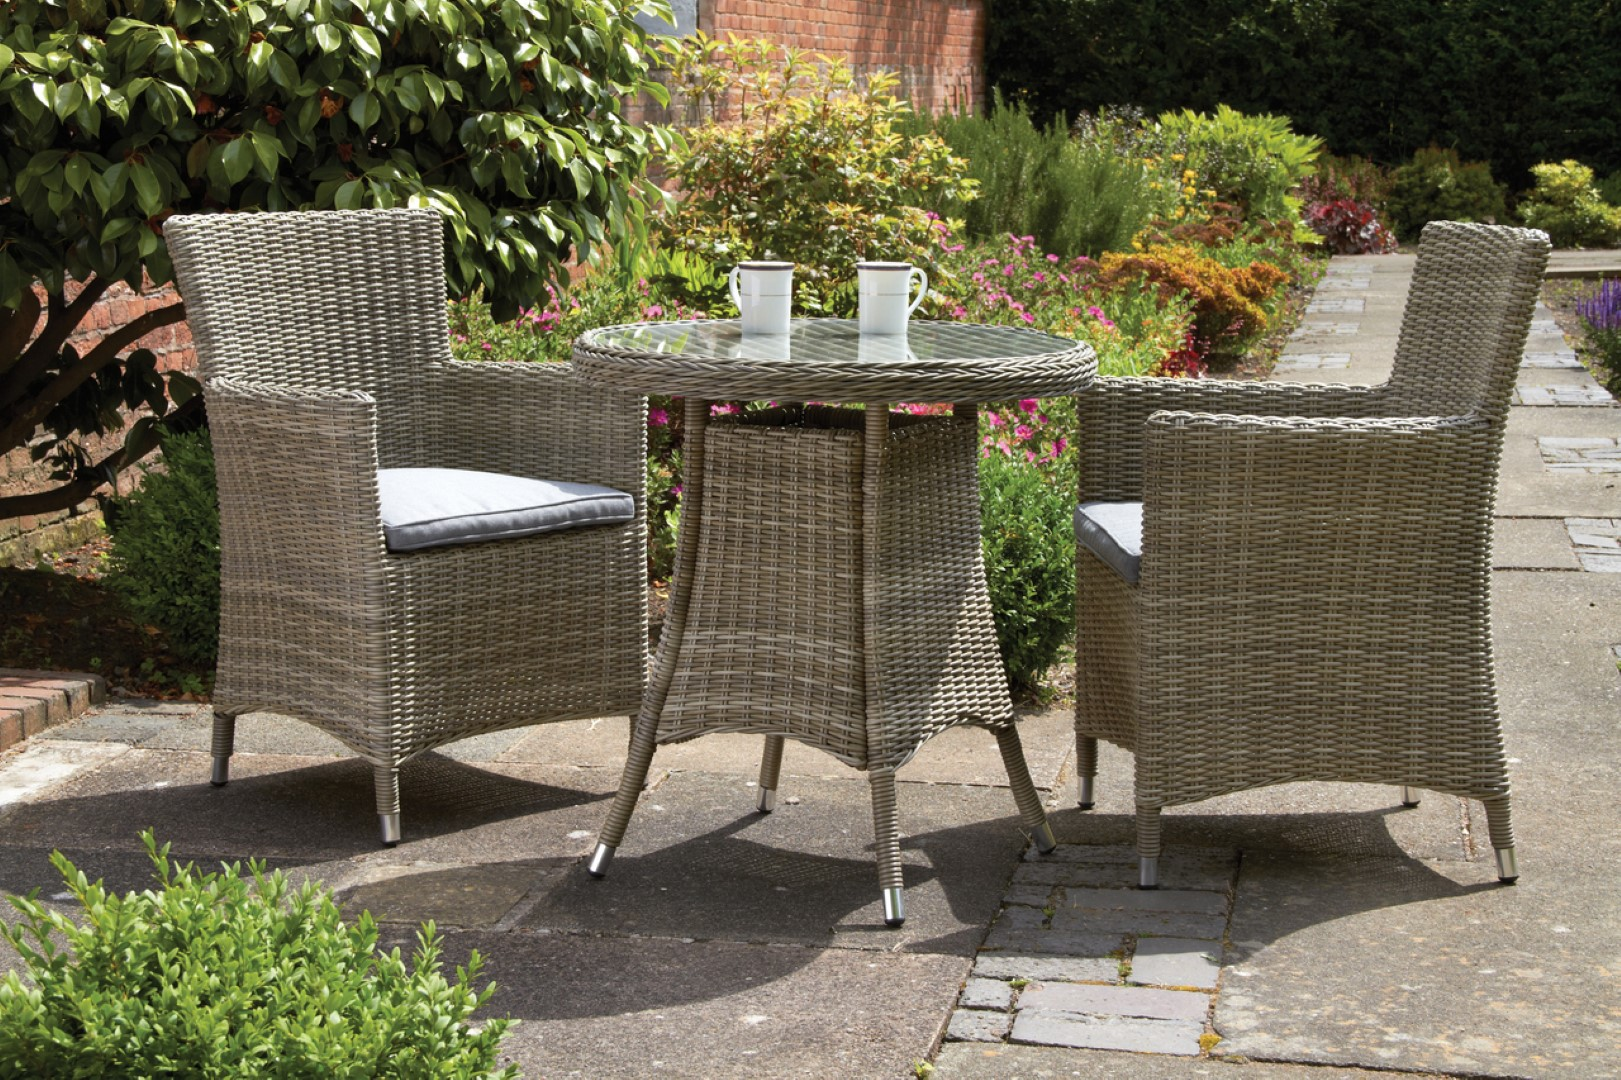 Royalcraft Wentworth 2 Seater Round Carver Rattan Bistro Set with WS Cushions